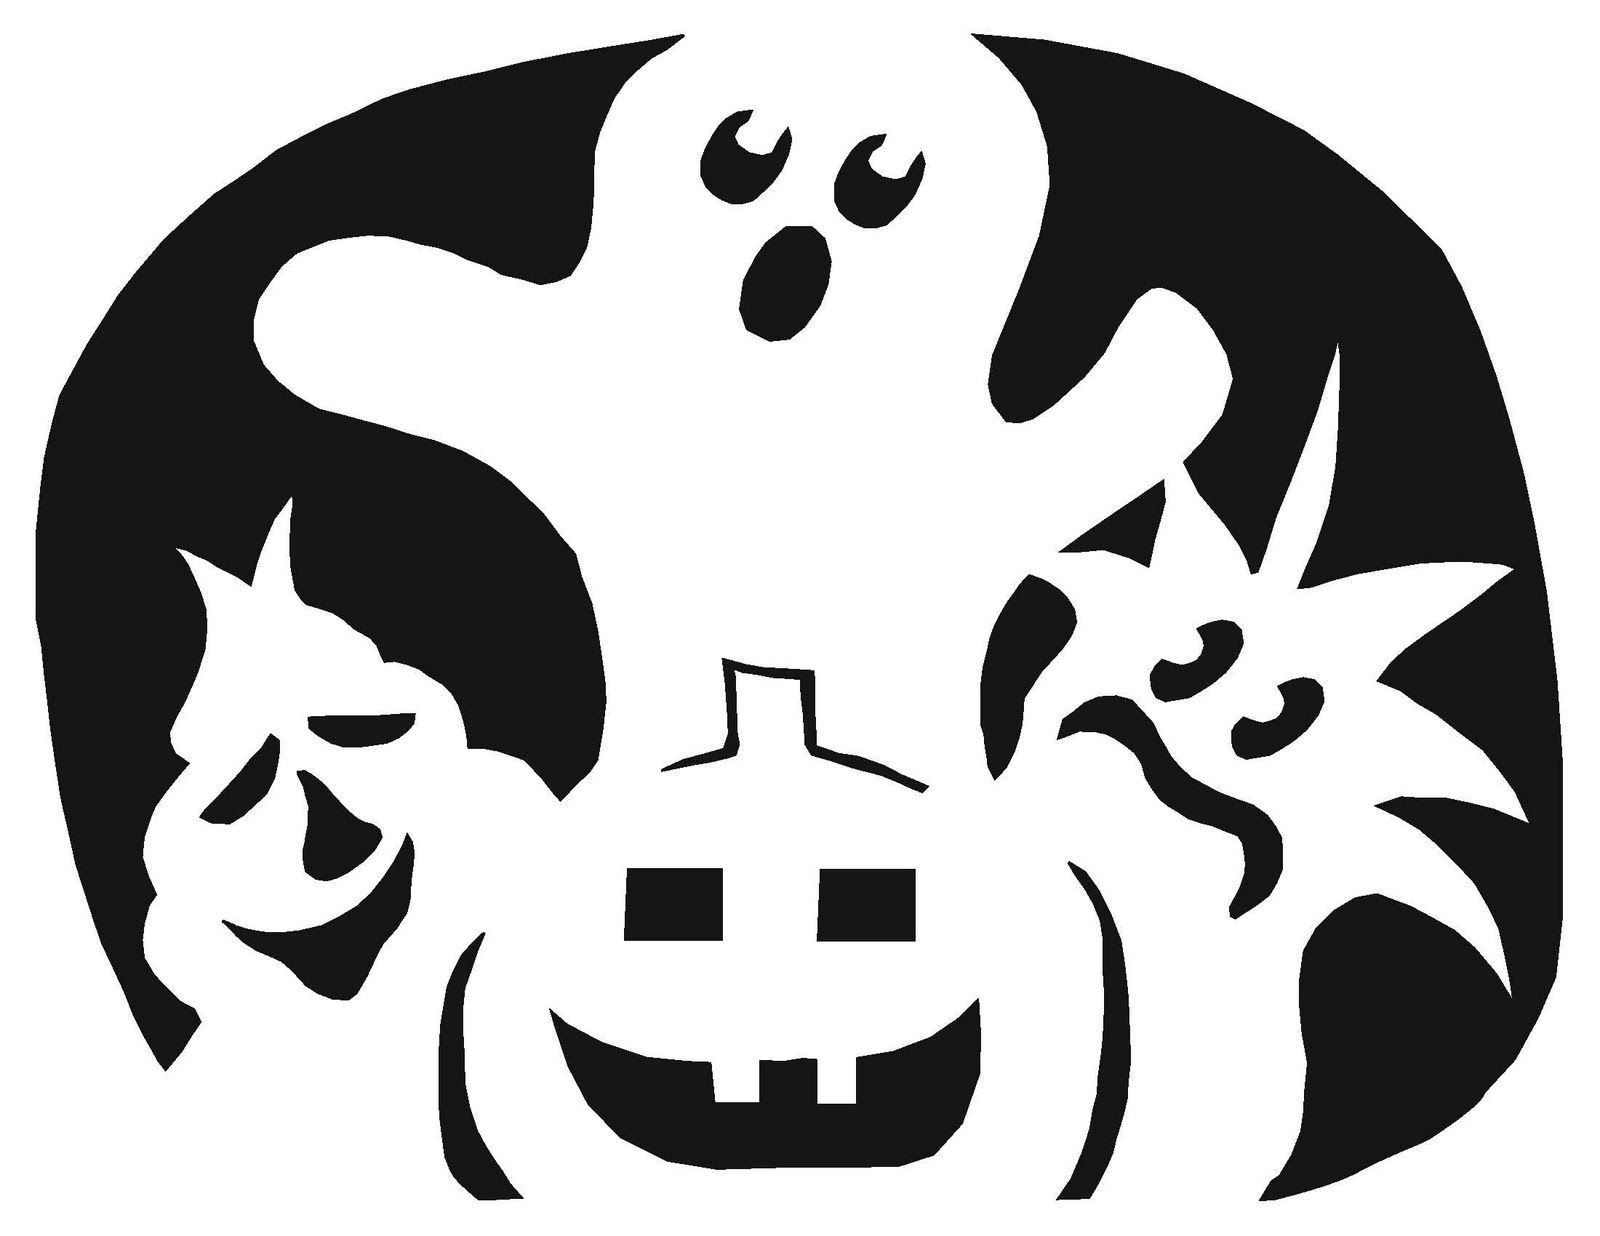 Funny Pumpkin Carving Templates | ... the black is what you cut out ...